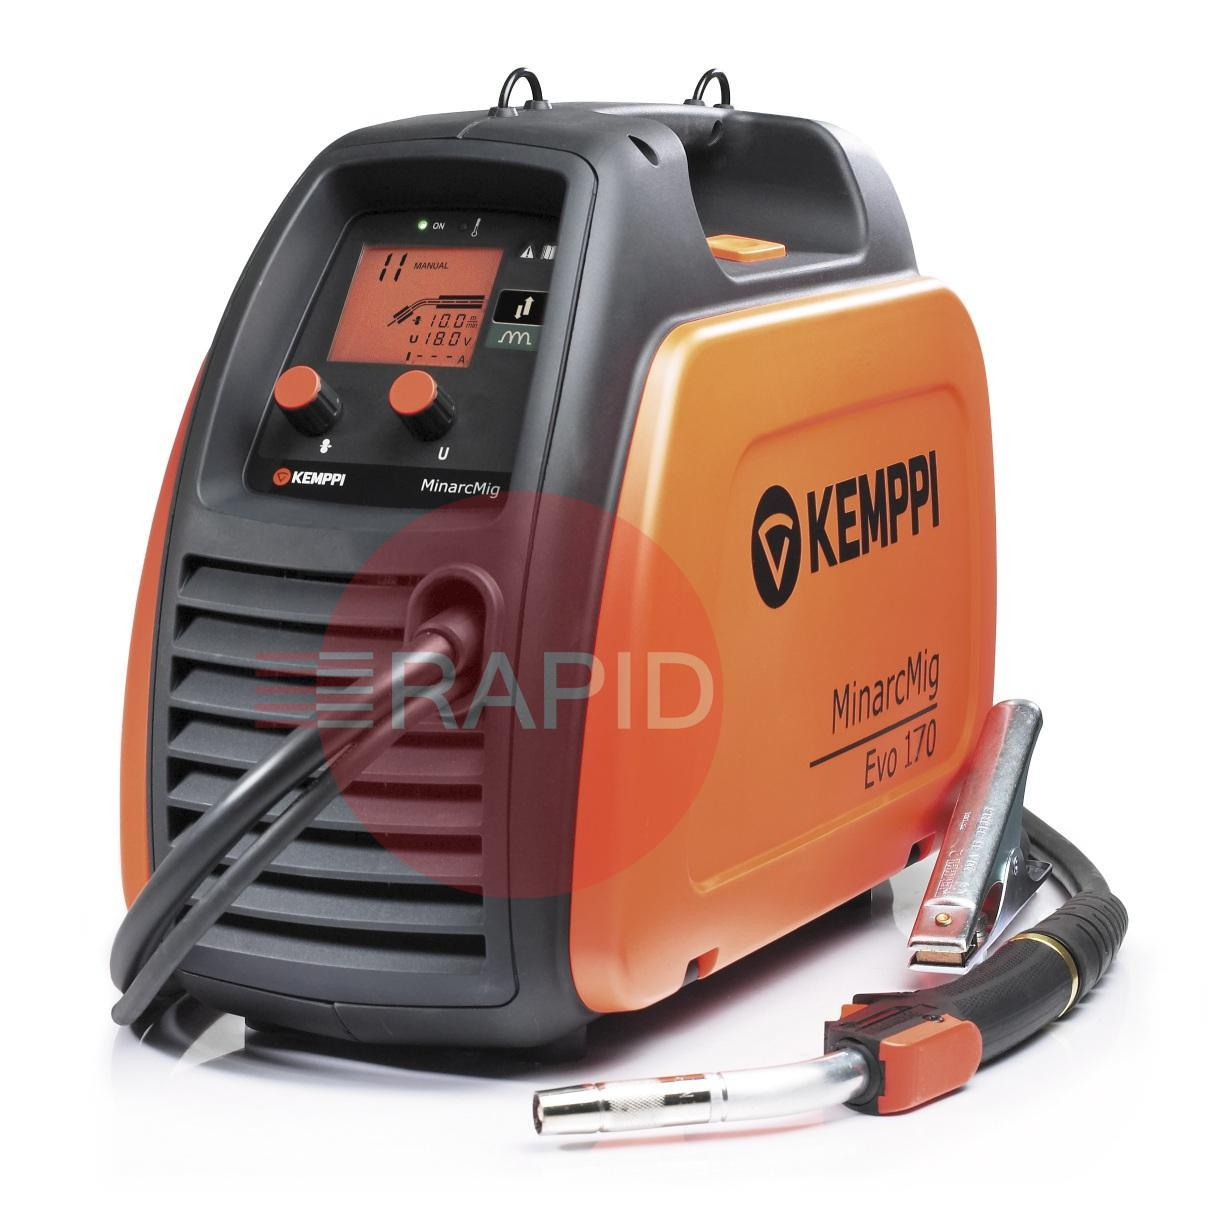 61008170  Kemppi Minarcmig 170 EVO Mig Welder 230V CE. Includes MMG22 3M Gun, Earth Cable, 4.5M Gas Hose <font color='blue'>Includes Free European Shipping</font>